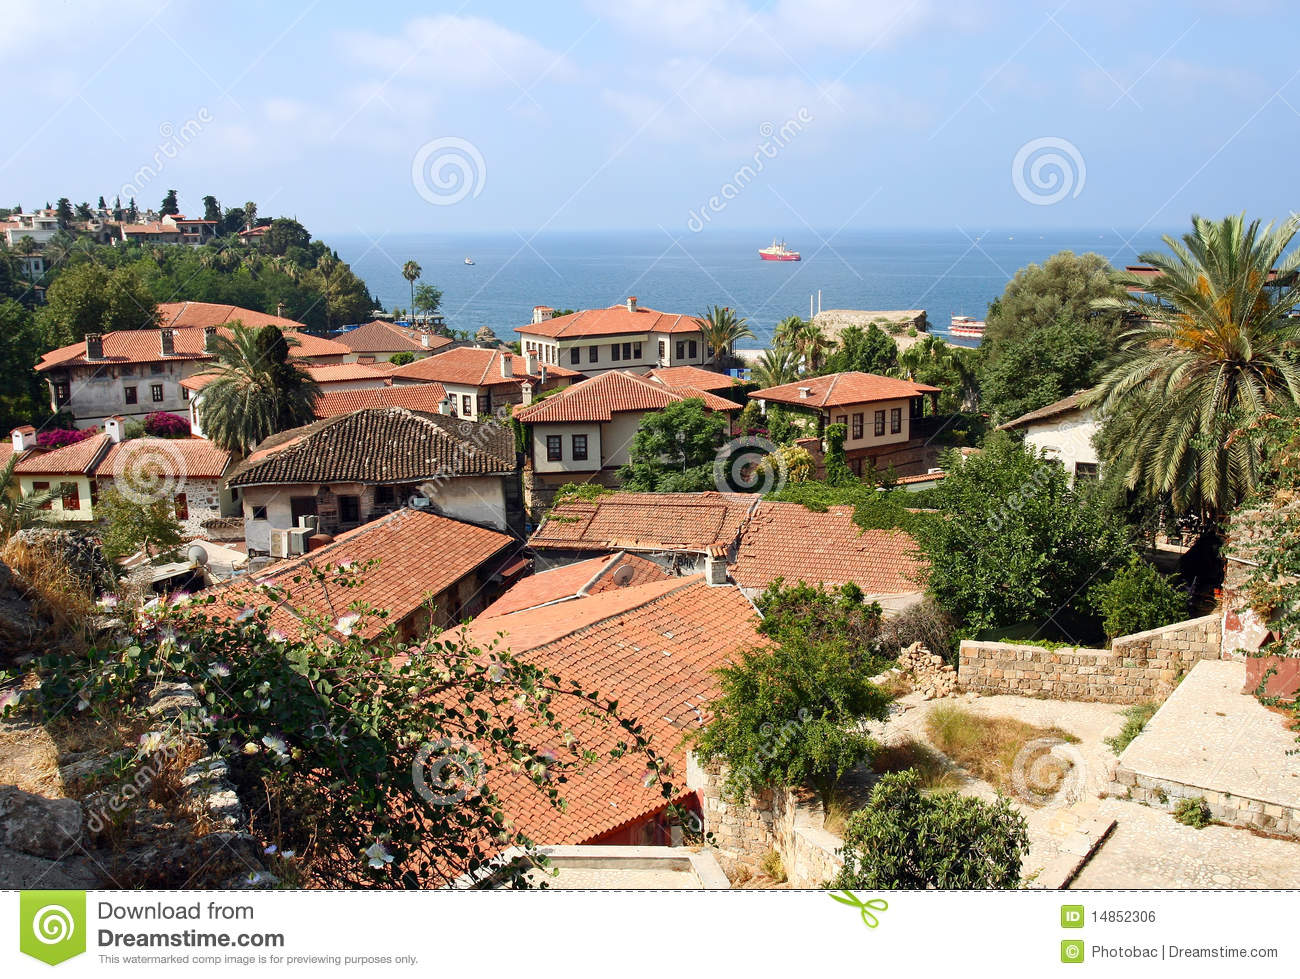 View of village on Mediterranean coast, Turkey